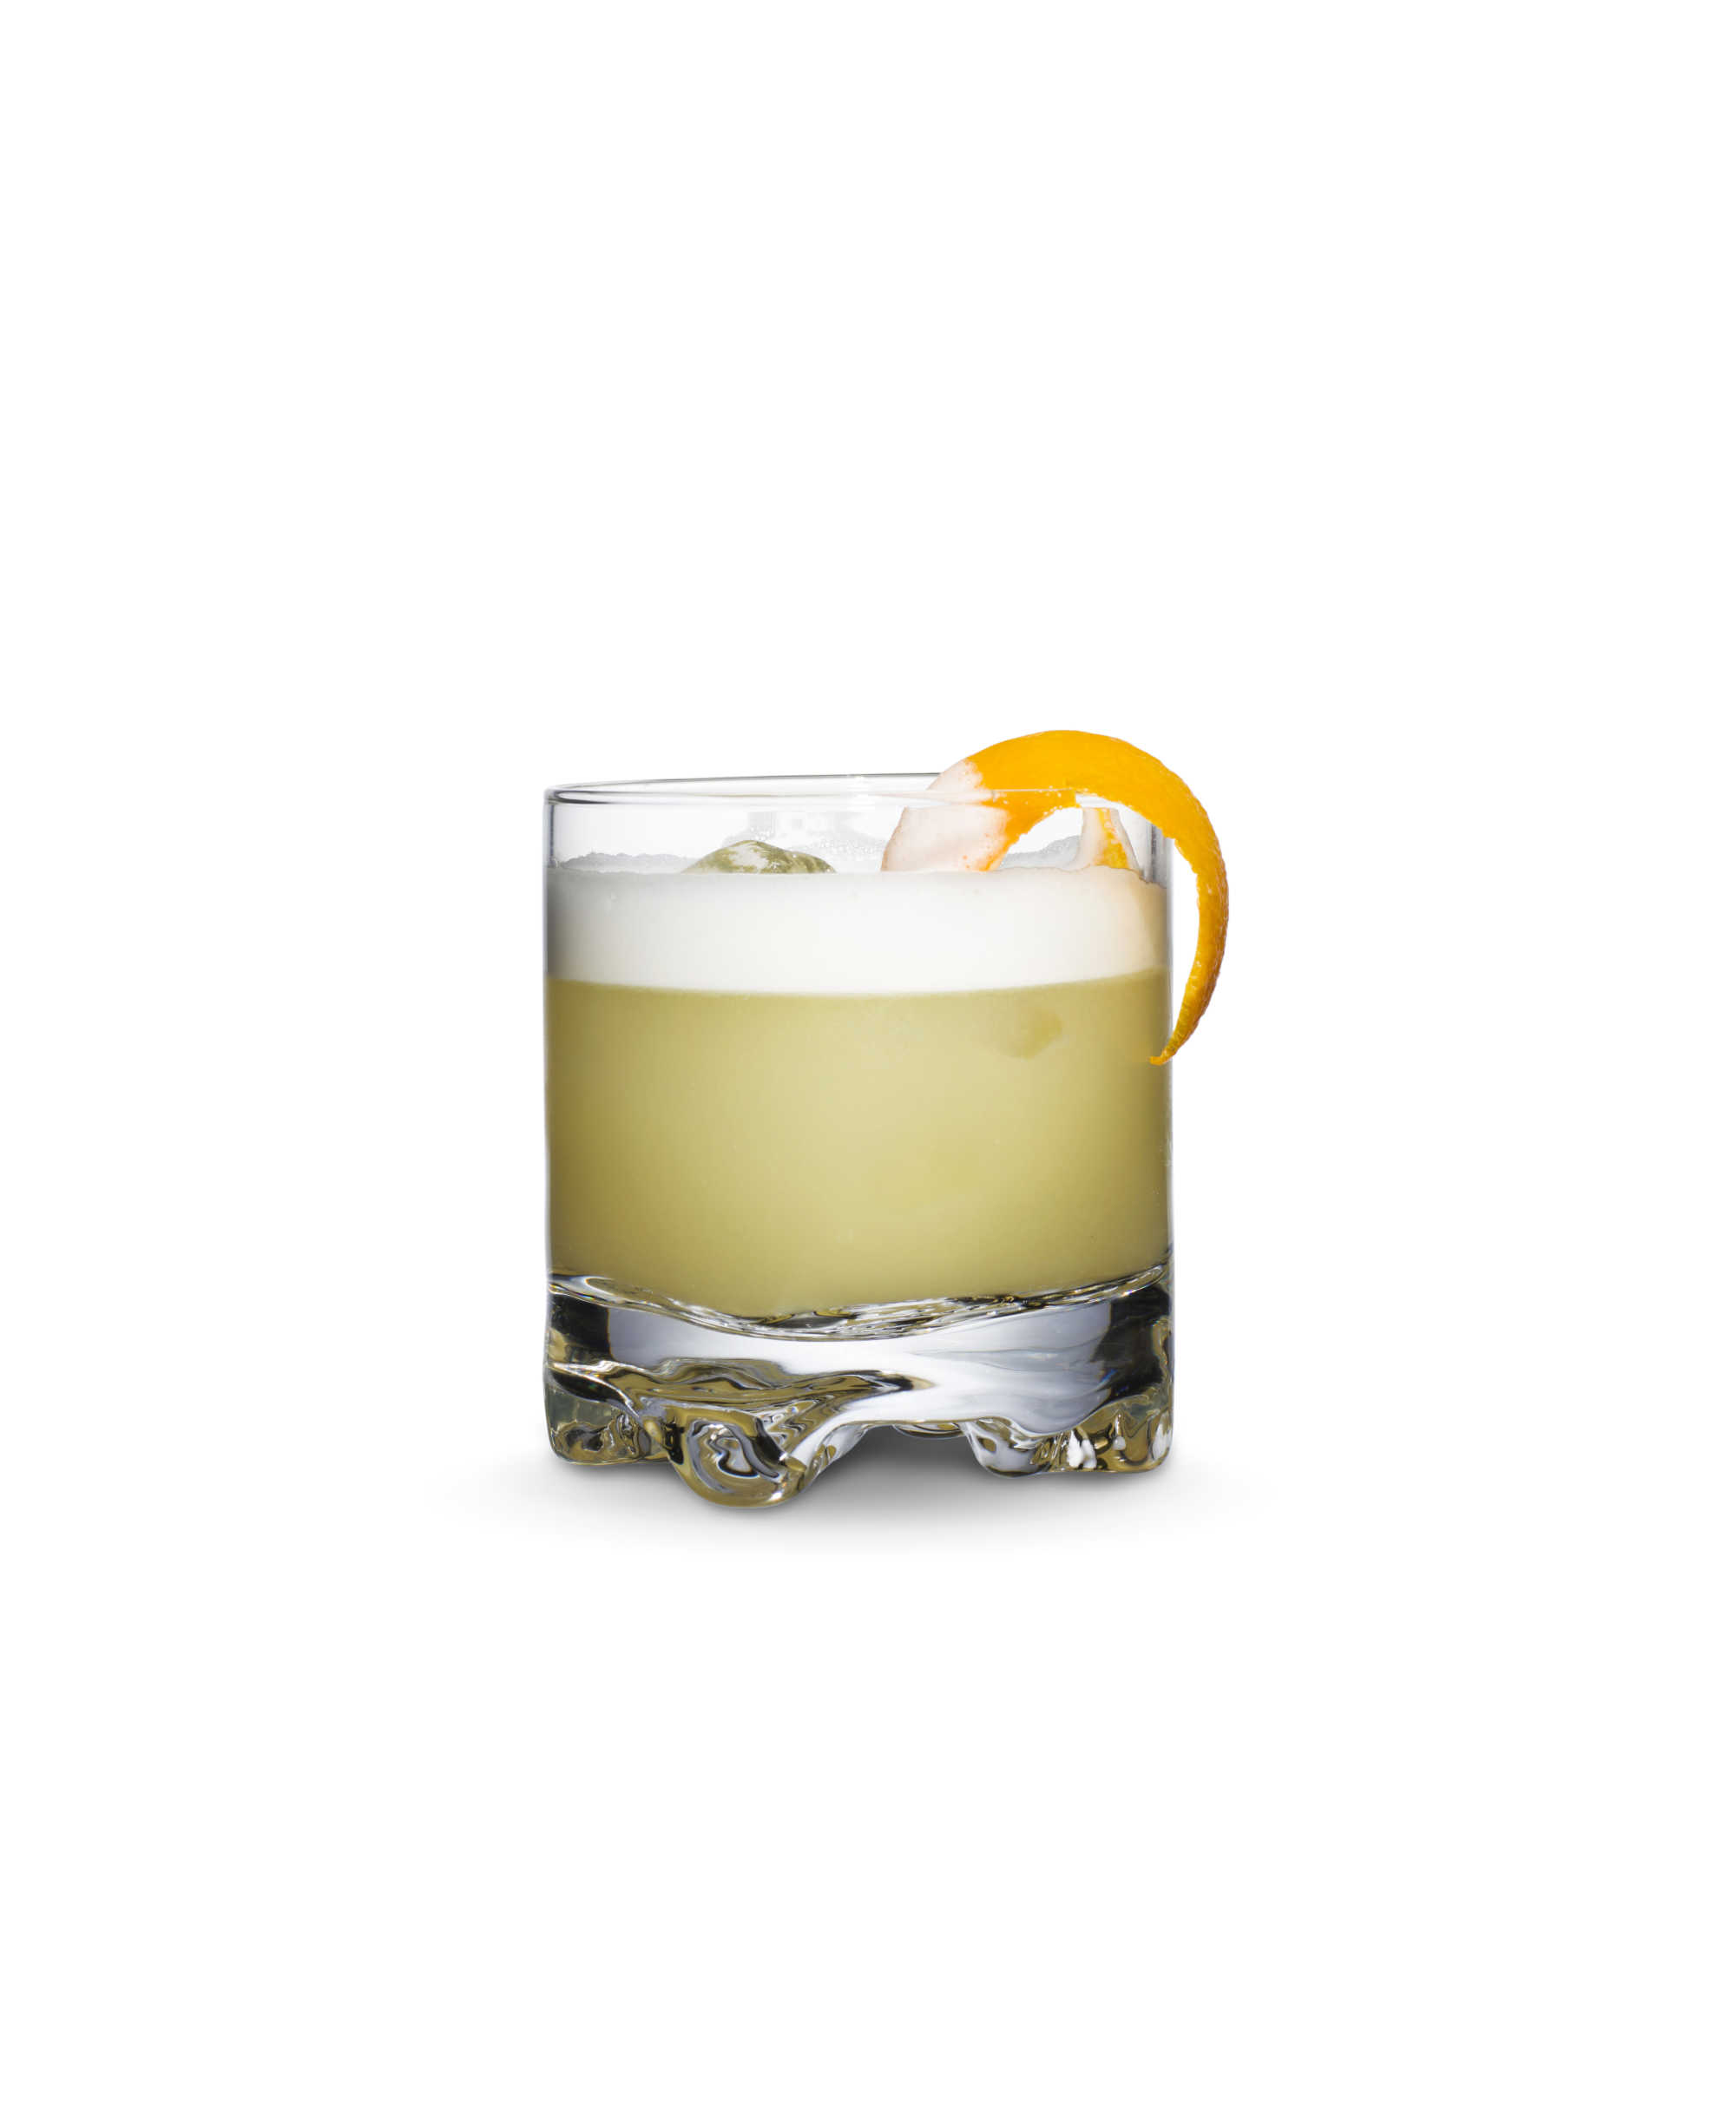 Whisky sour cocktail with orange peel.